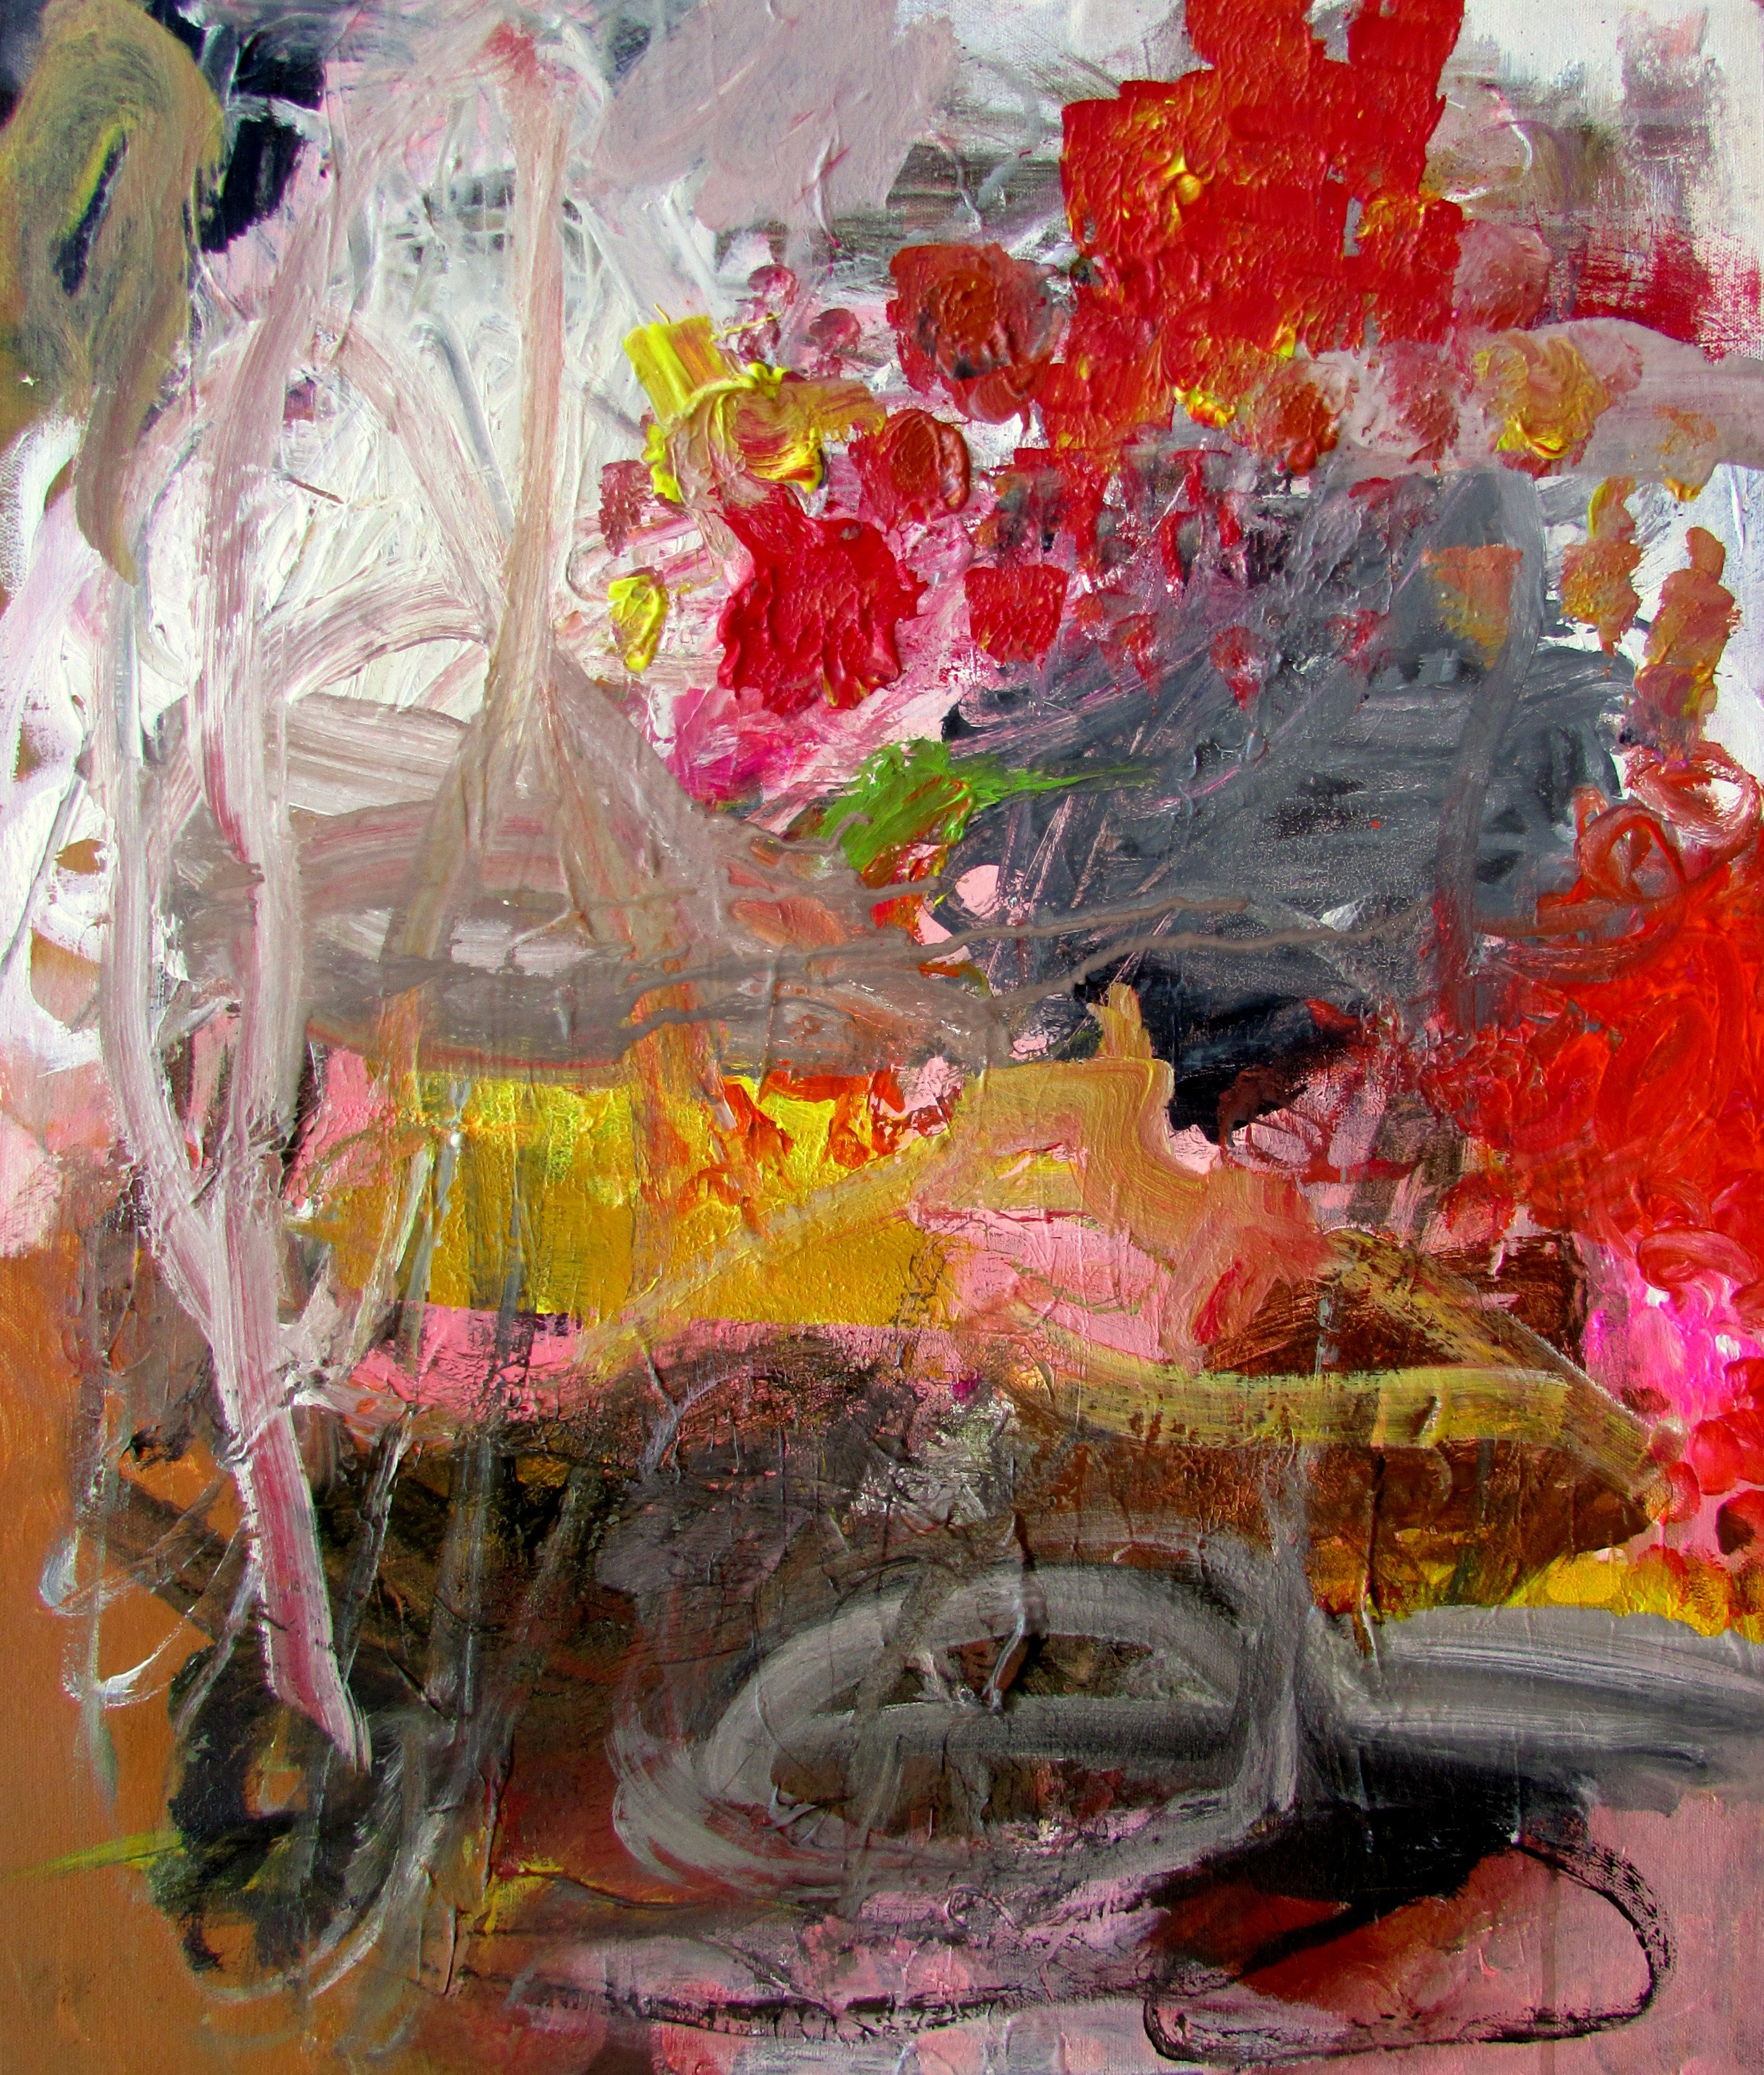 I know a mess when I see one -wendy mcwilliams